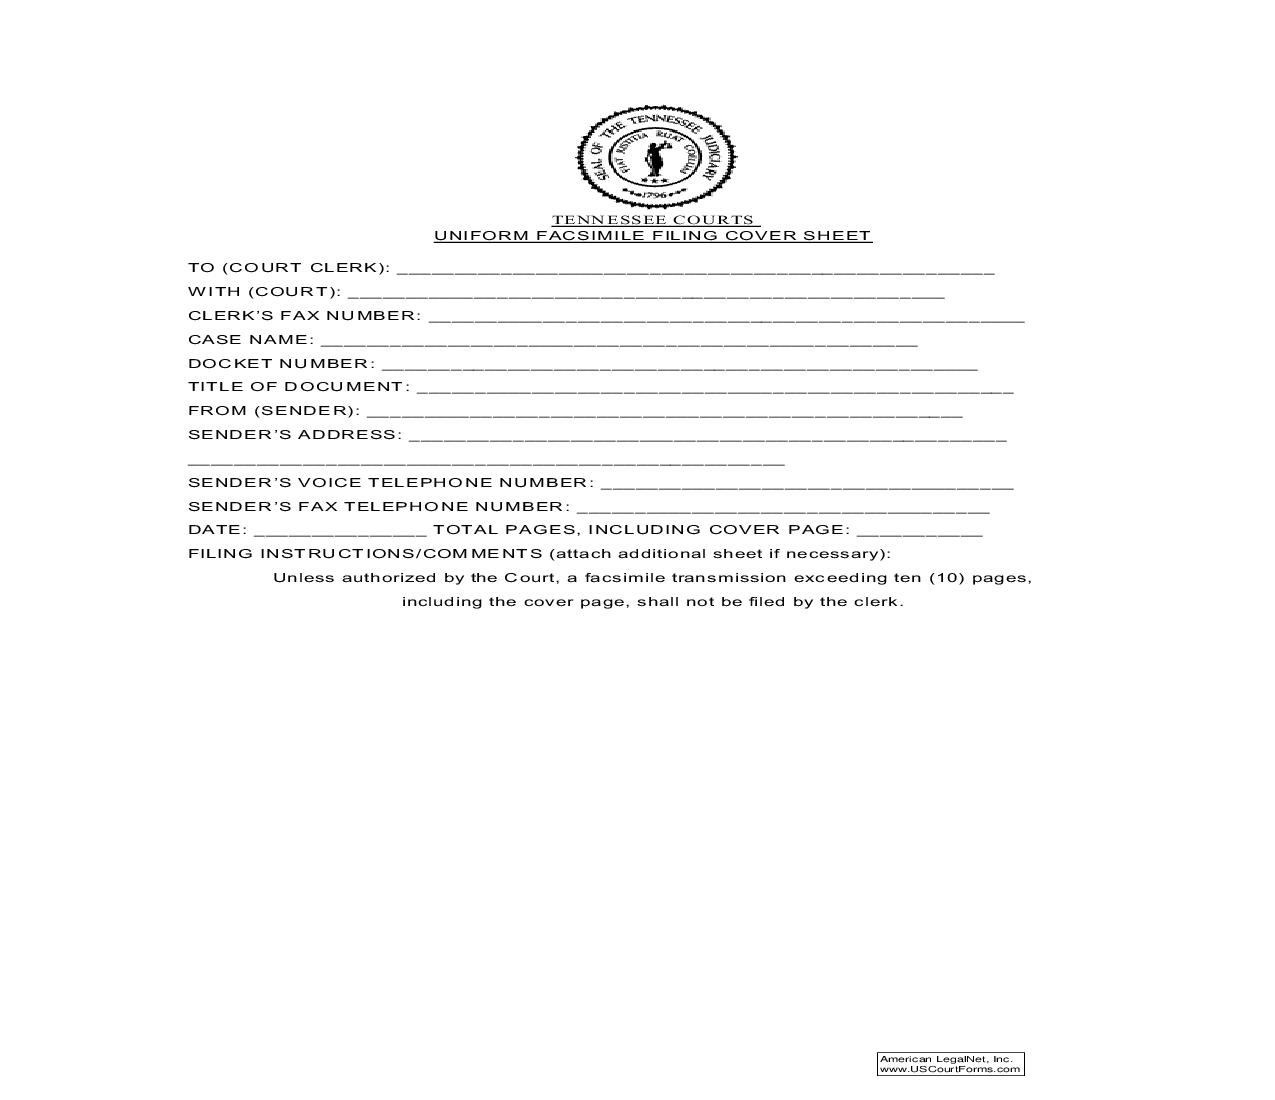 Uniform Fax Filing Cover Sheet | Pdf Fpdf Doc Docx | Tennessee